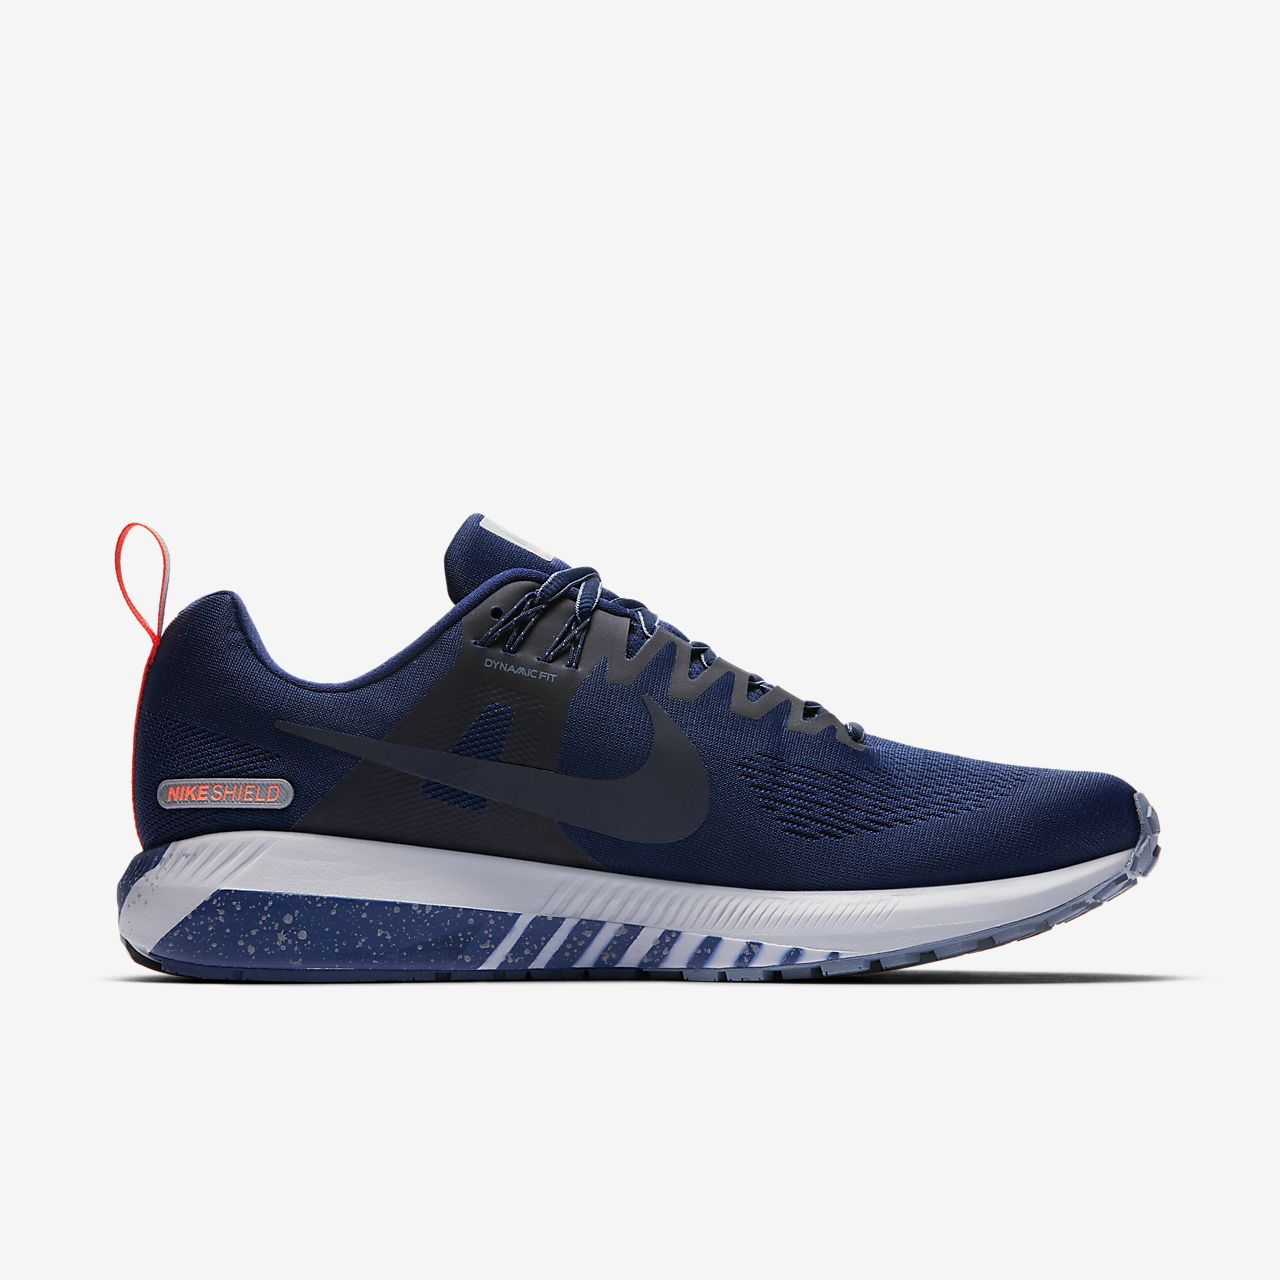 Nike AIR ZOOM STRUCTURE 21 Gris 1Jg15Xc3Ab